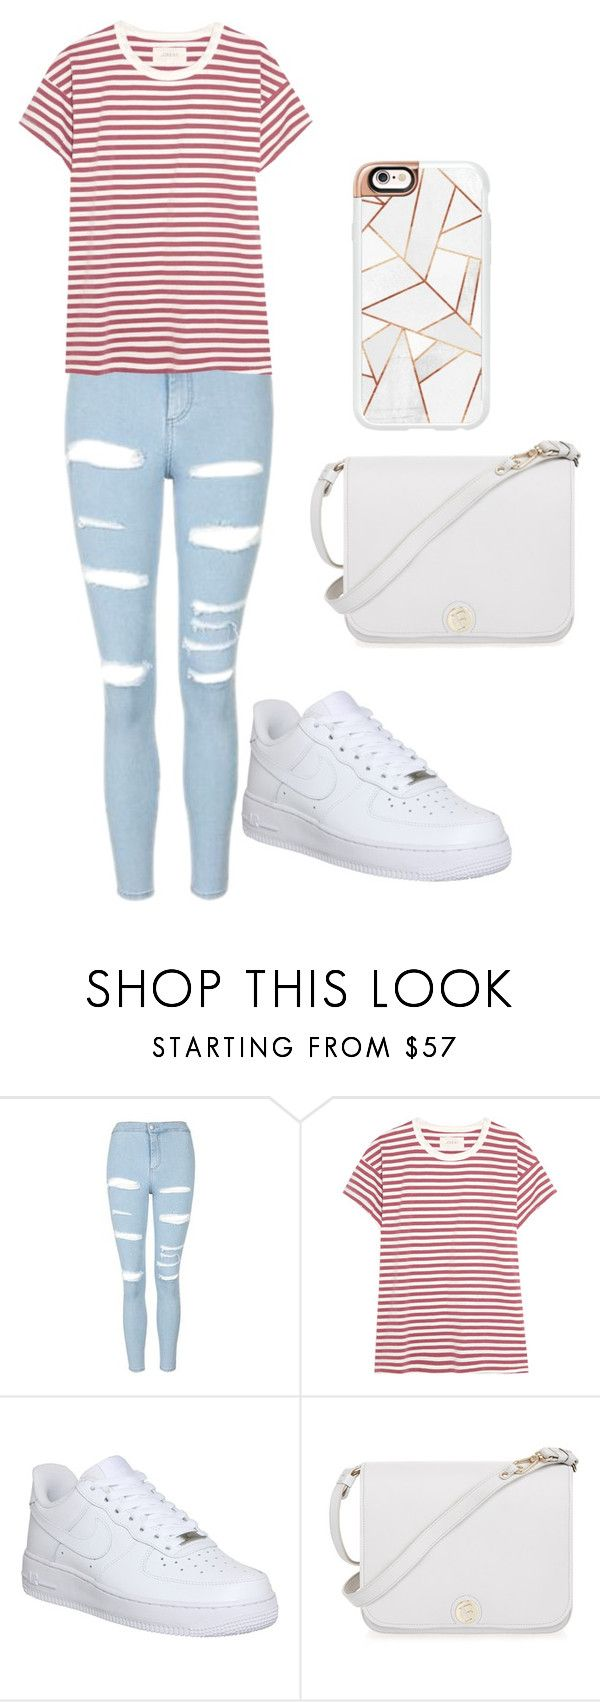 """Untitled #54"" by smolconversehighs ❤ liked on Polyvore featuring Topshop, The Great, NIKE, Furla and Casetify"